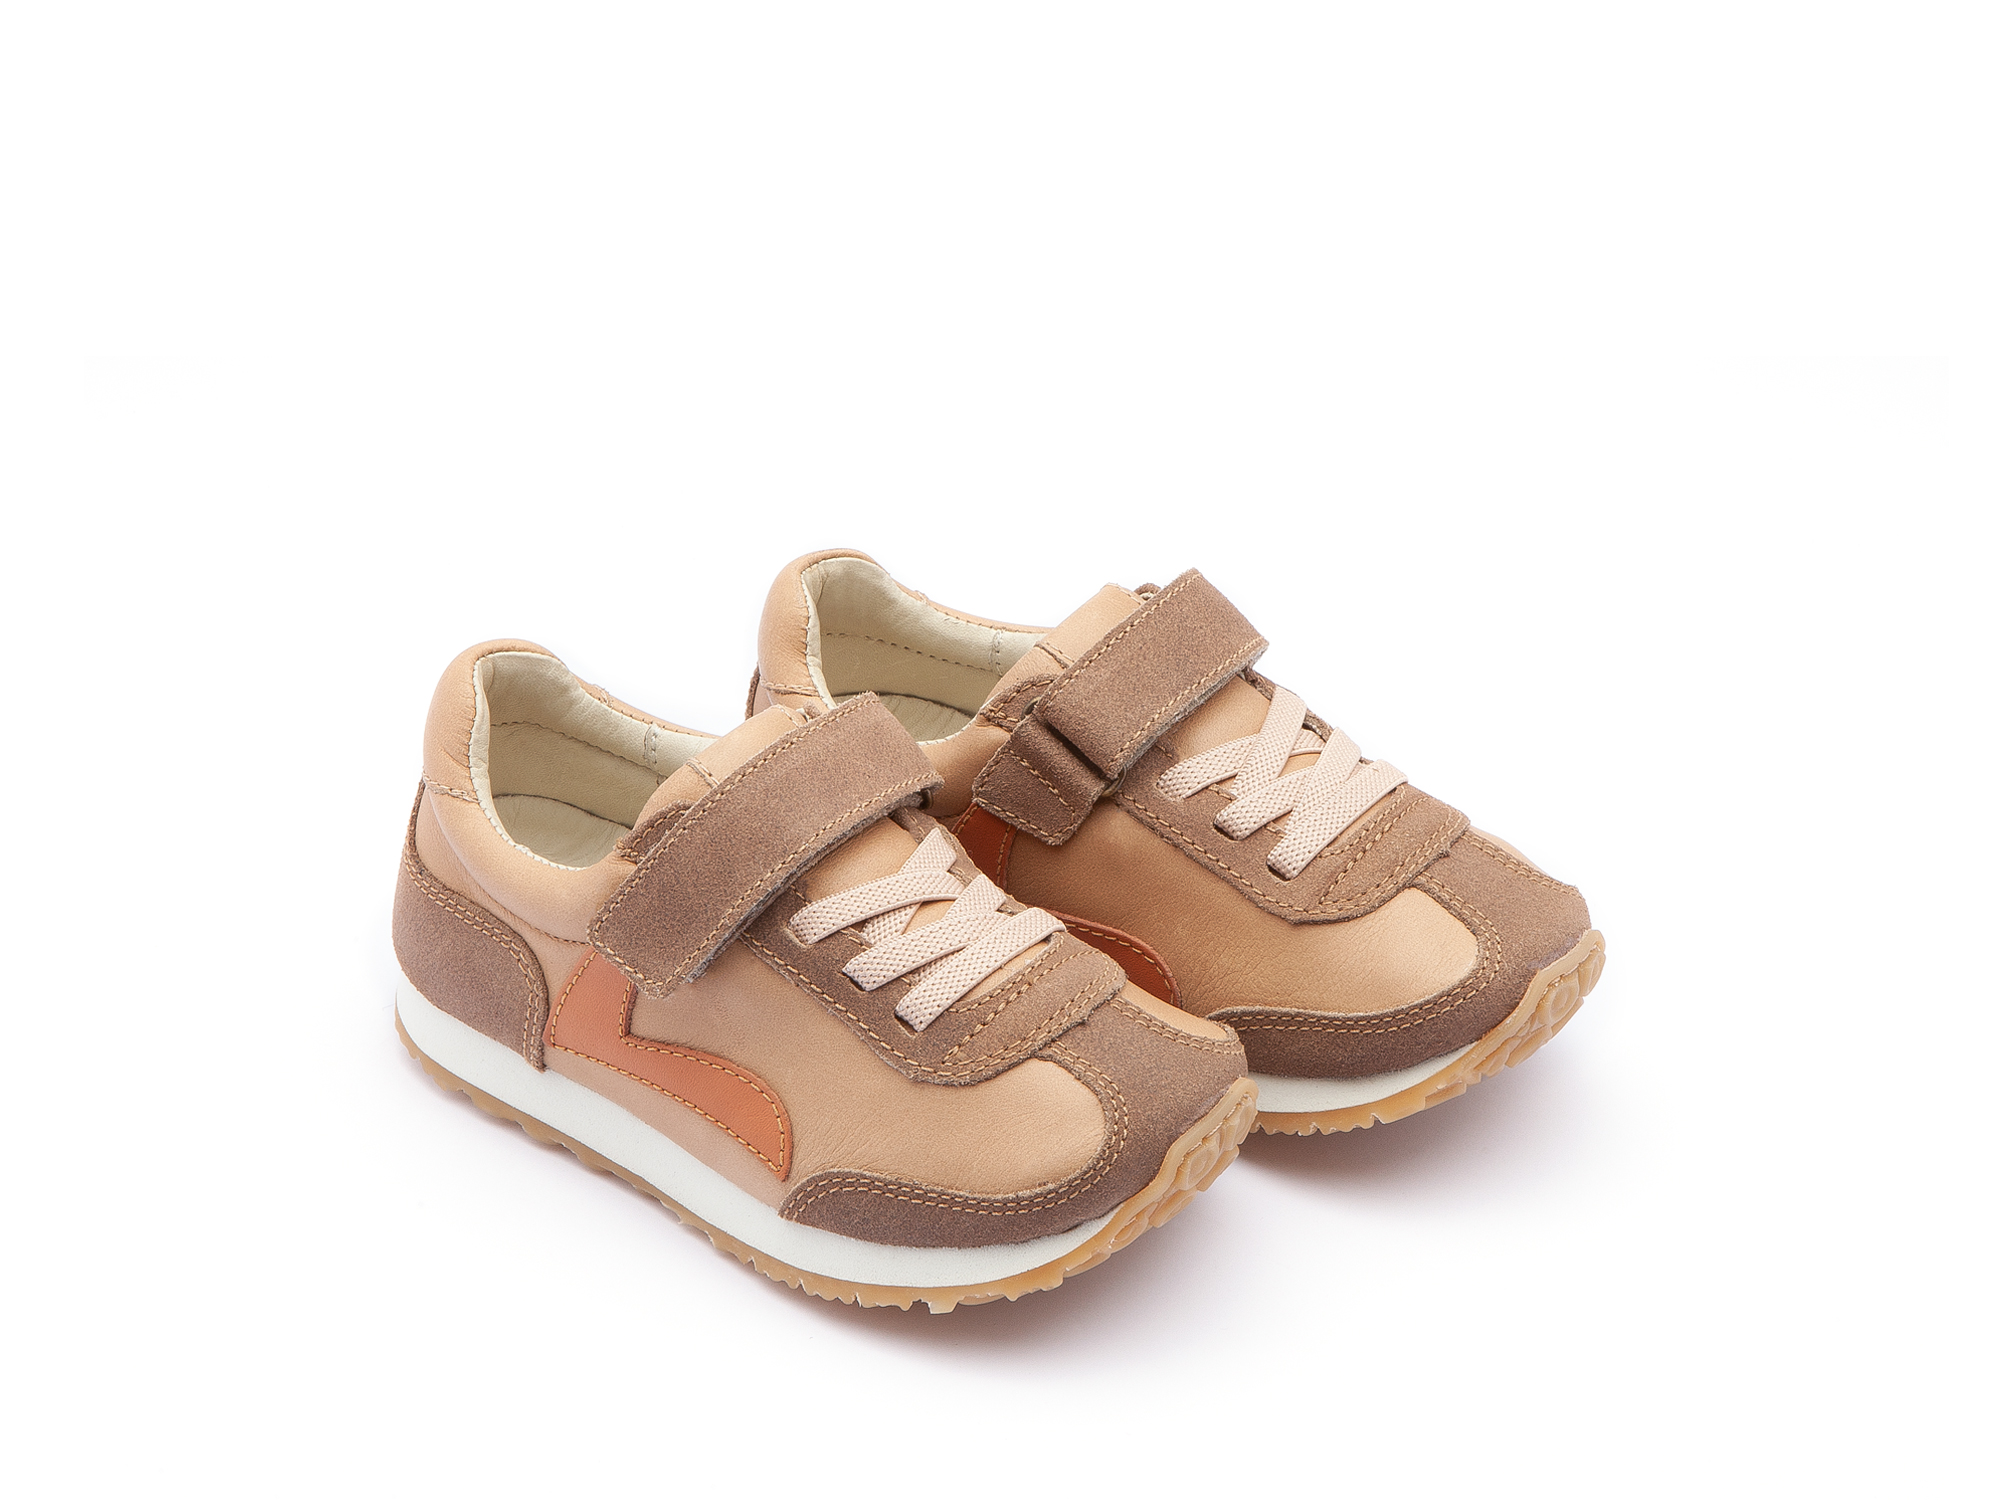 Tênis Little Start Sand/ Dry Tan Suede Toddler 2 à 4 anos - 0